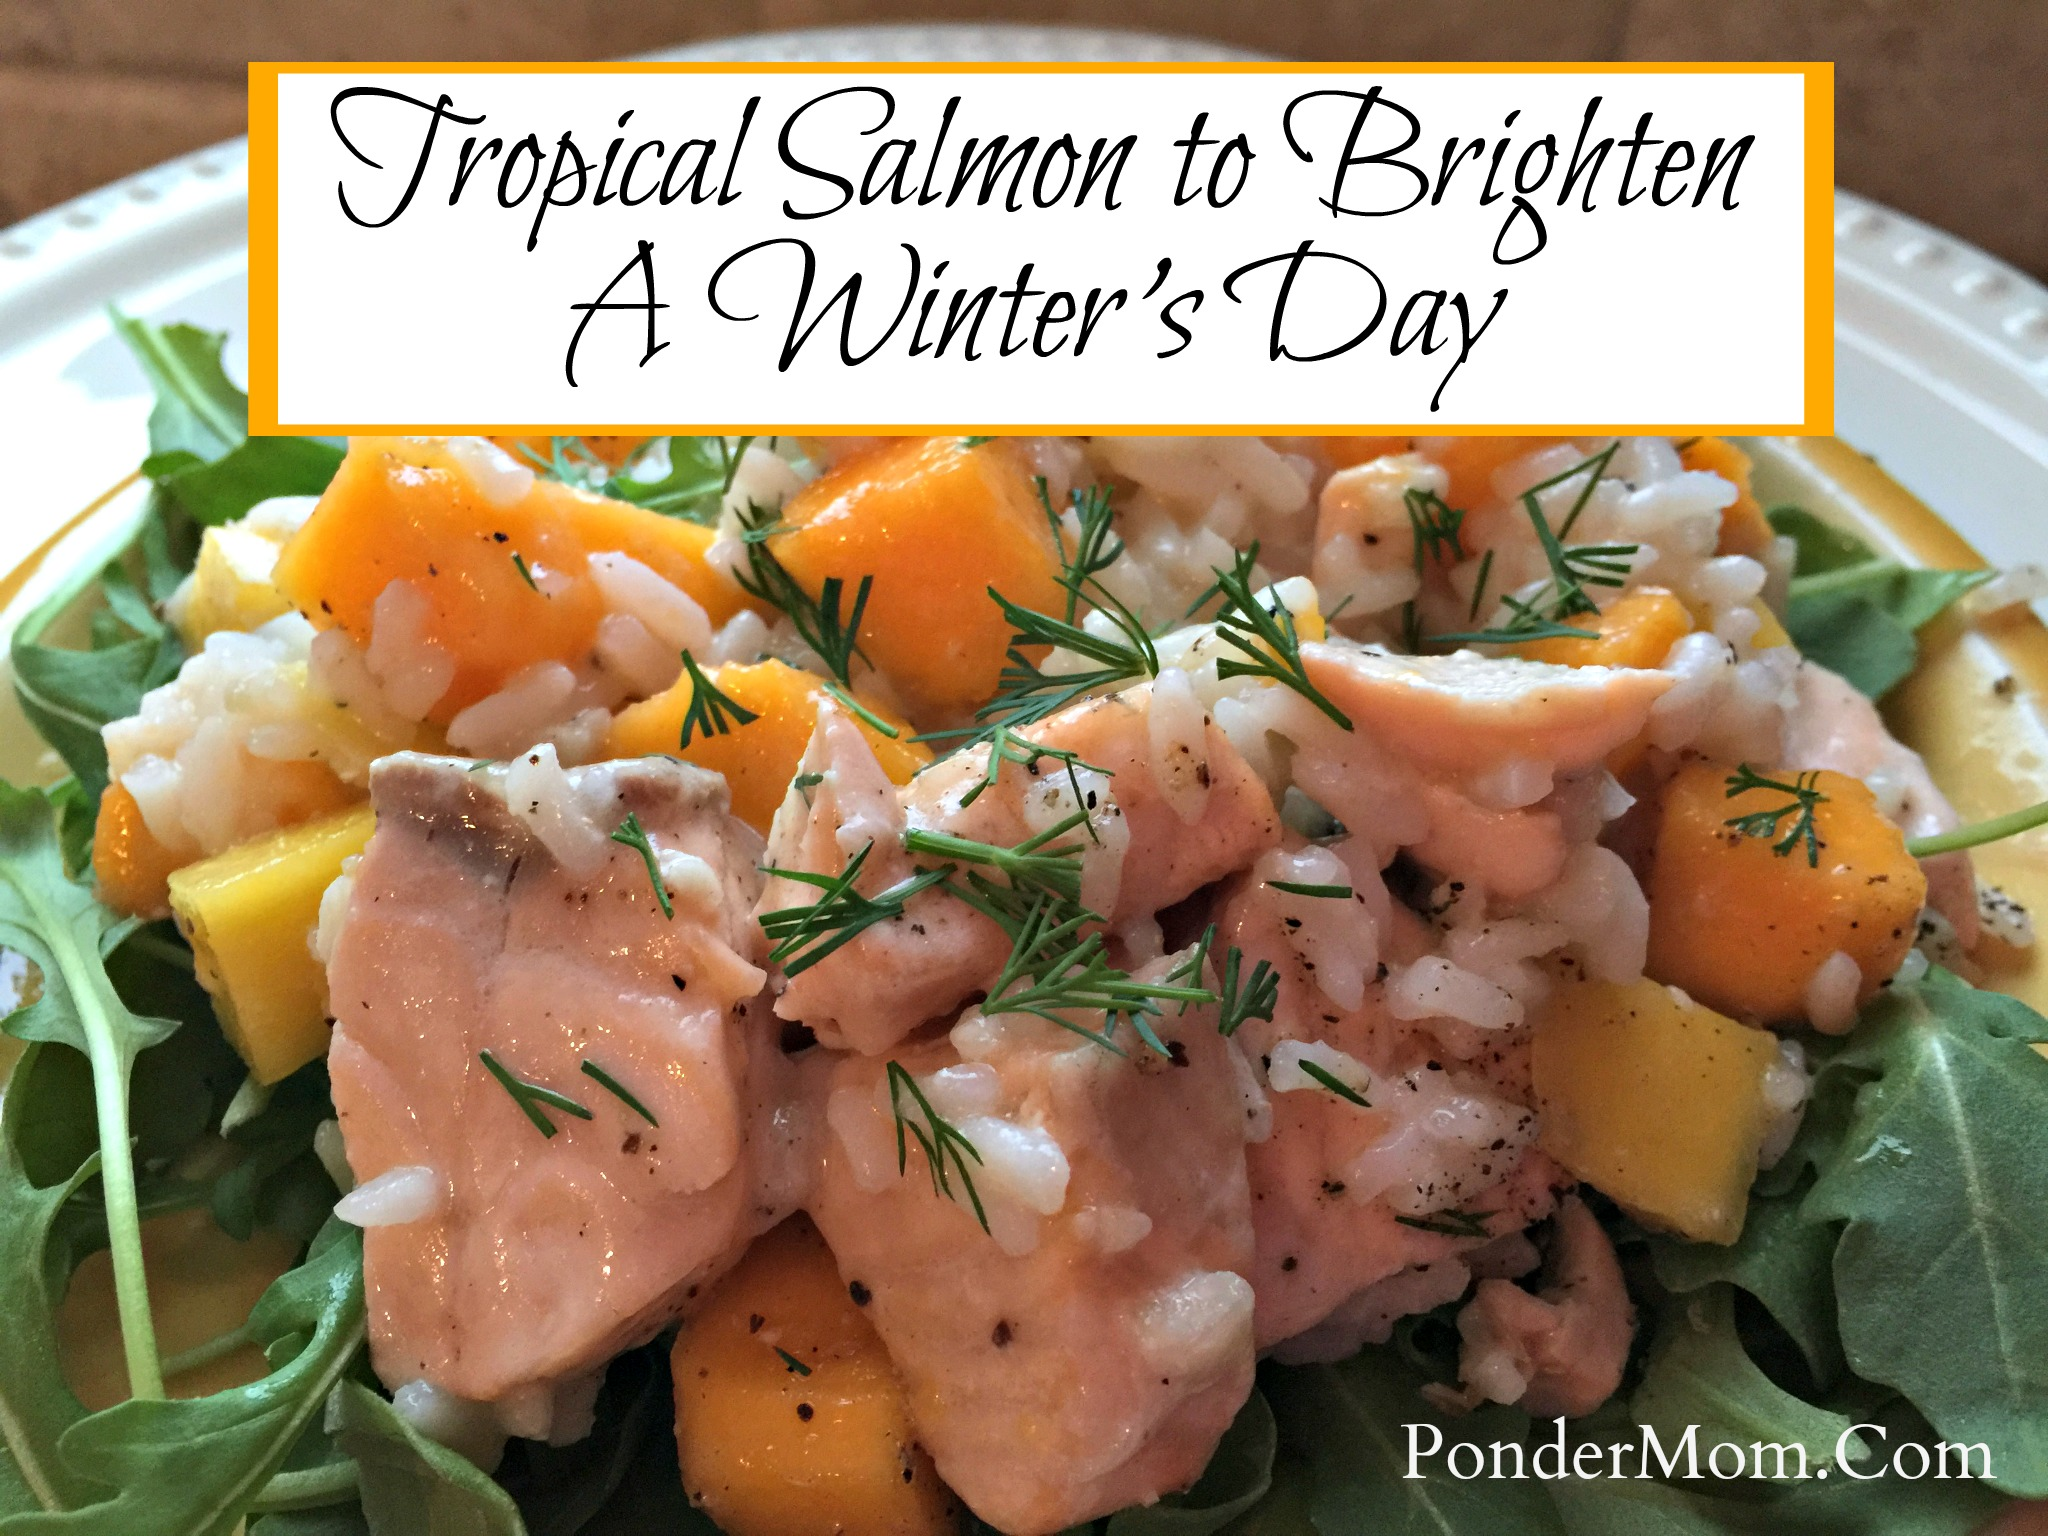 Healthy Meal #1 – Caribbean Salmon: A Taste of Summer in the Dead of Winter!